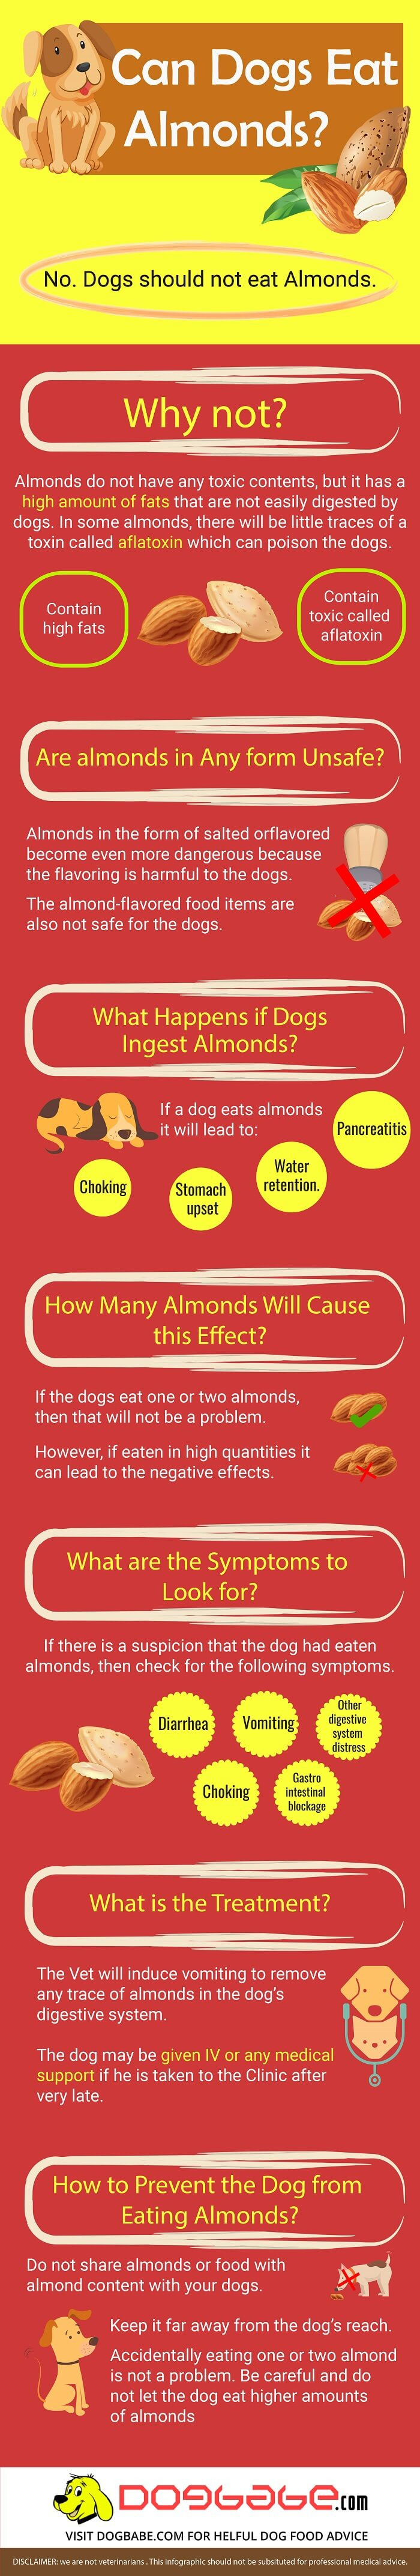 can dogs eat almonds infographic